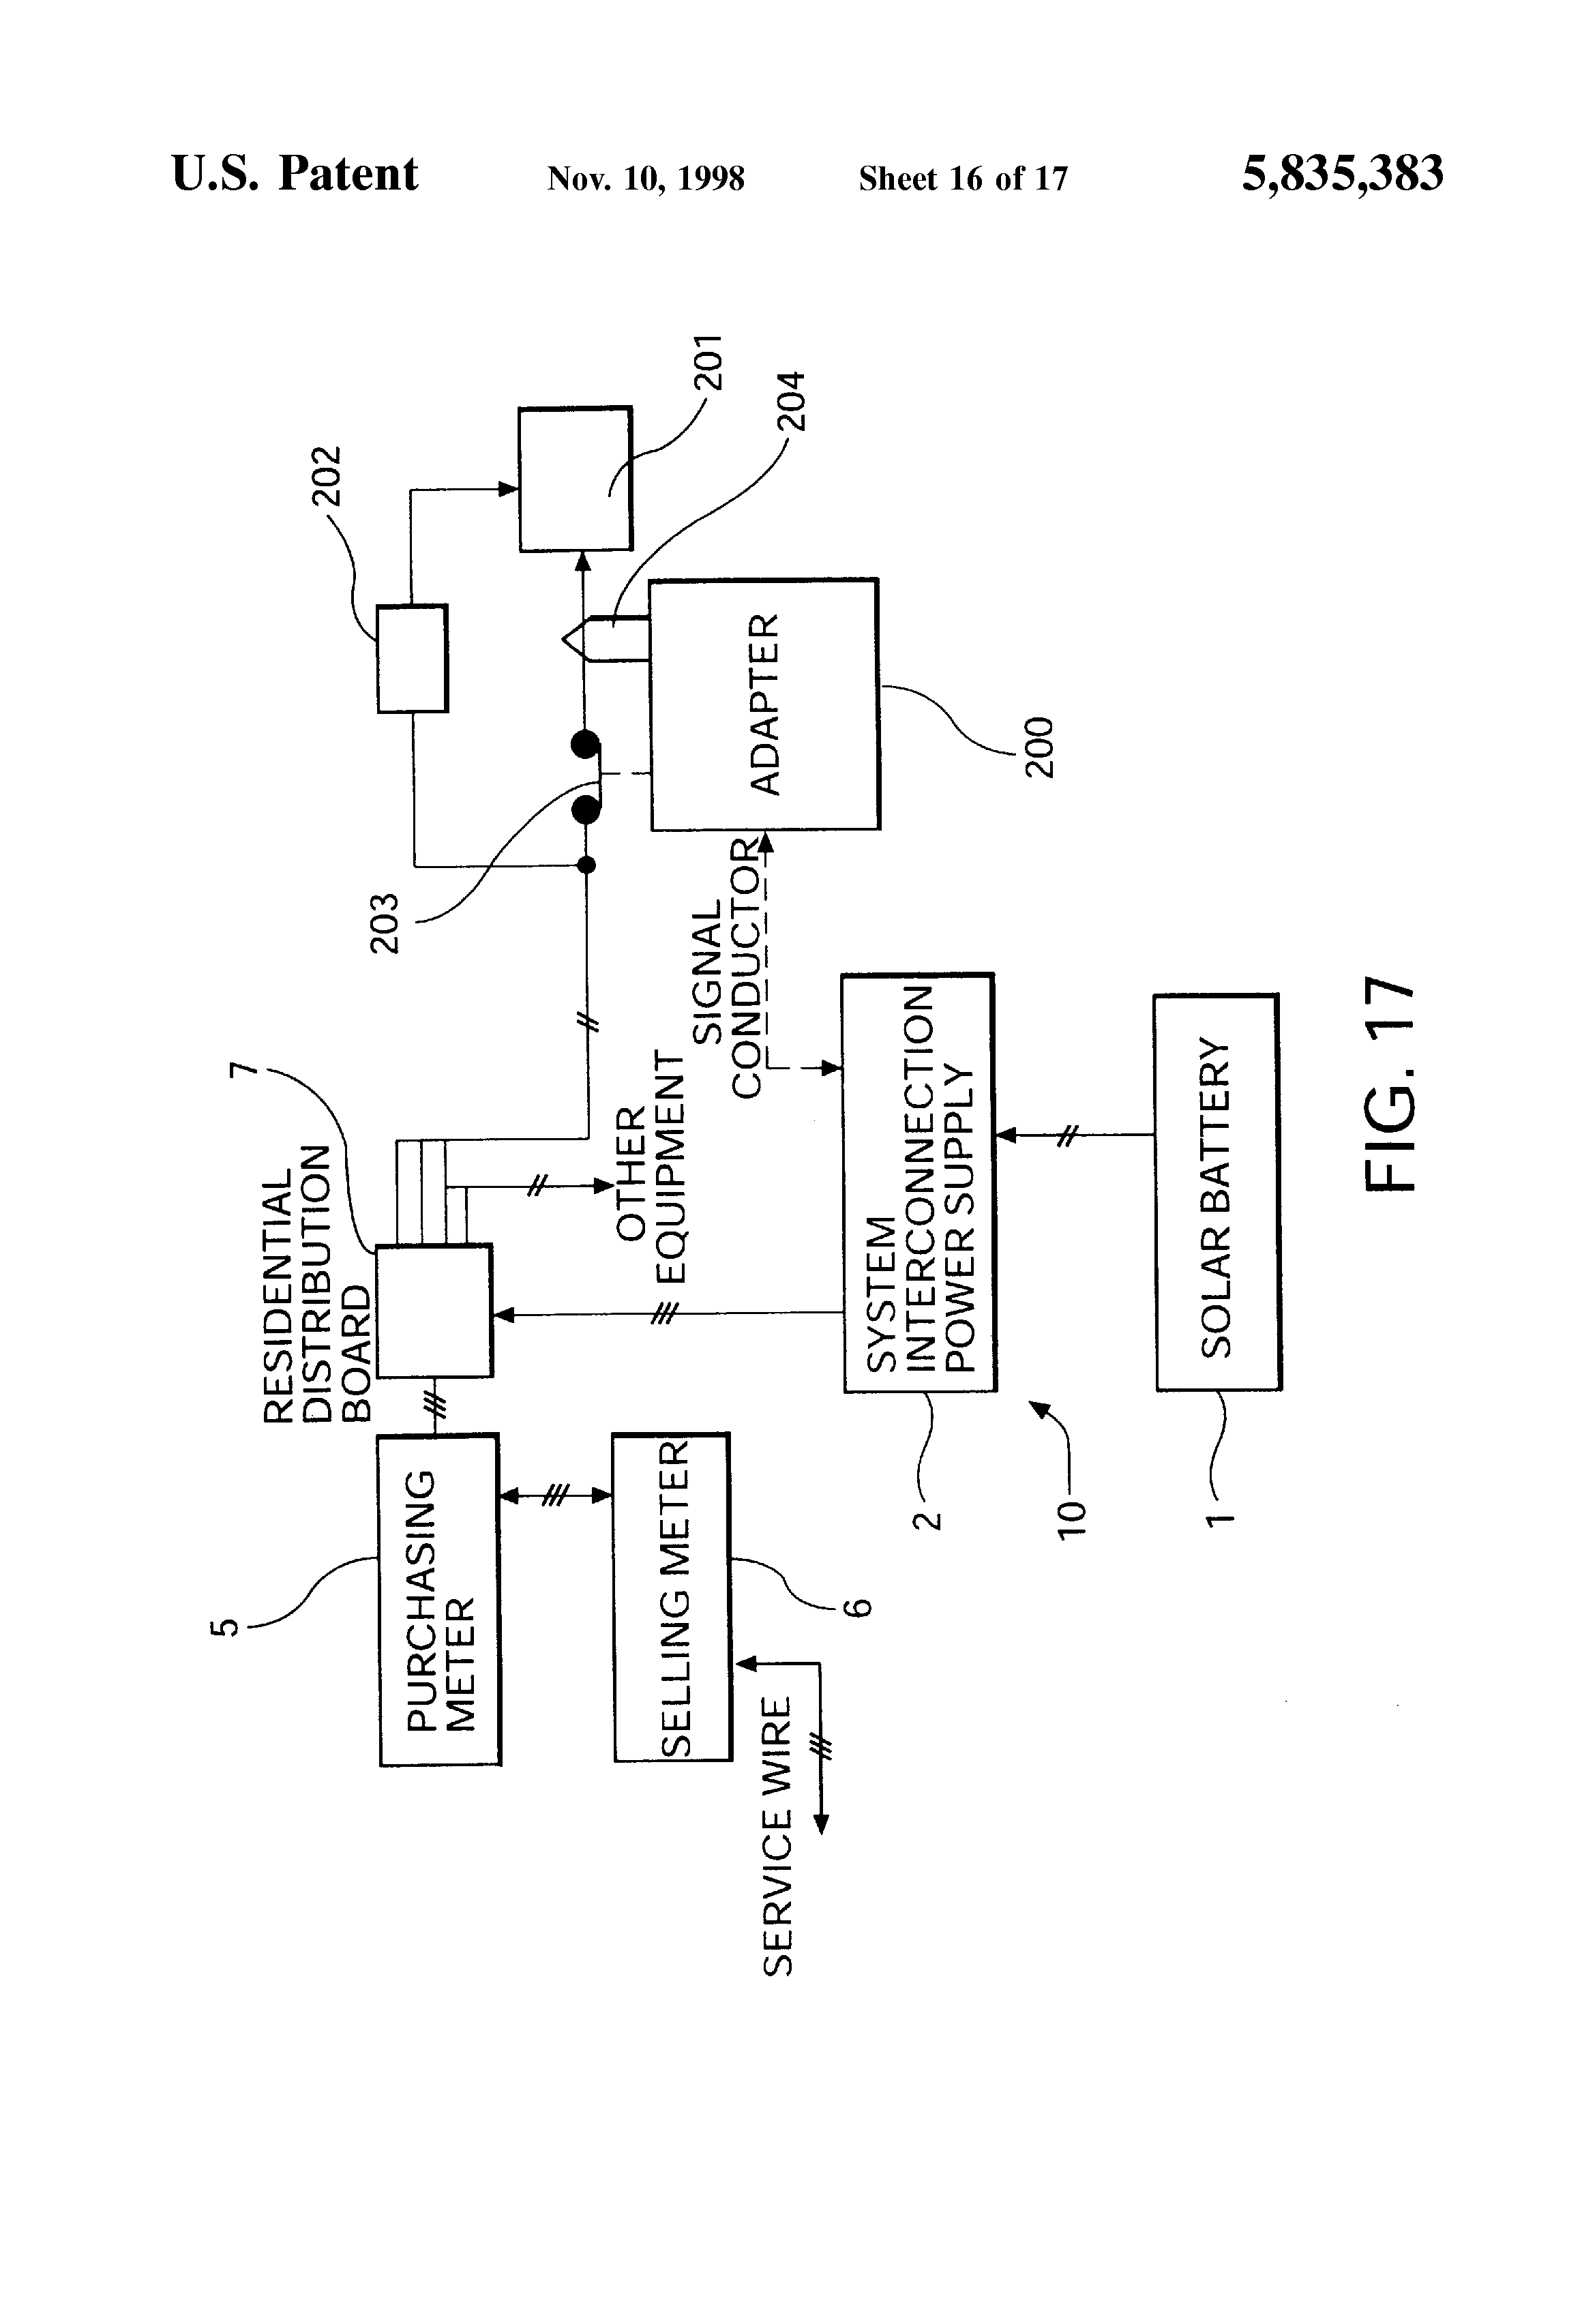 Patent Us5835383 System Interconnected Generator For Converting Remote Control Relay To Dc Motor Forward And Reverse Namely Drawing